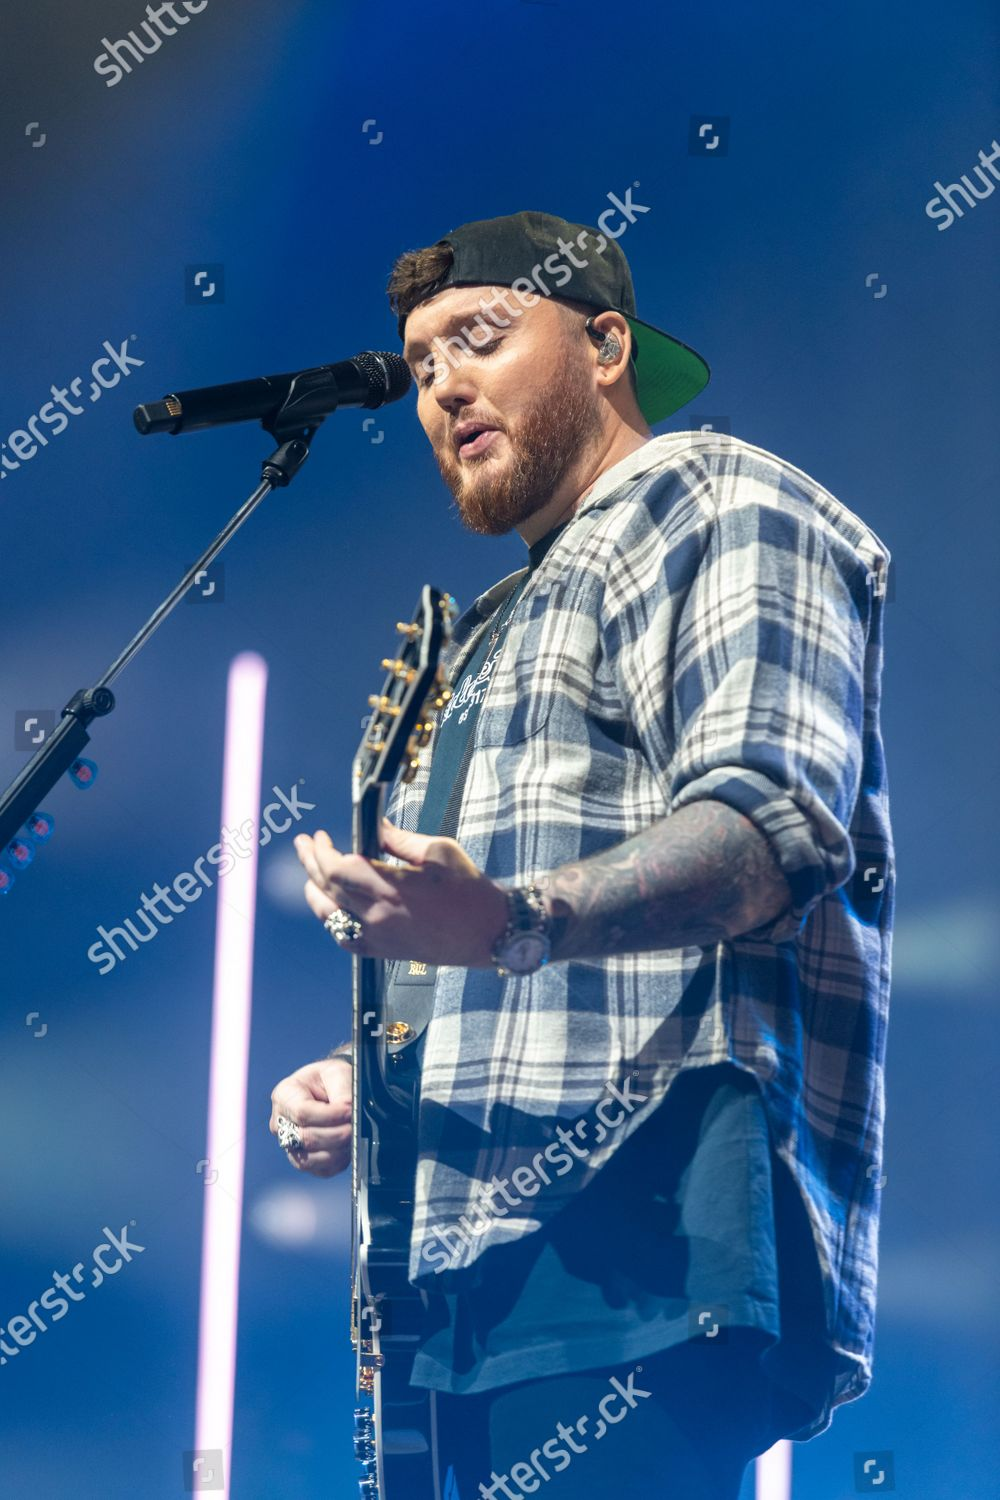 james arthur song 2020